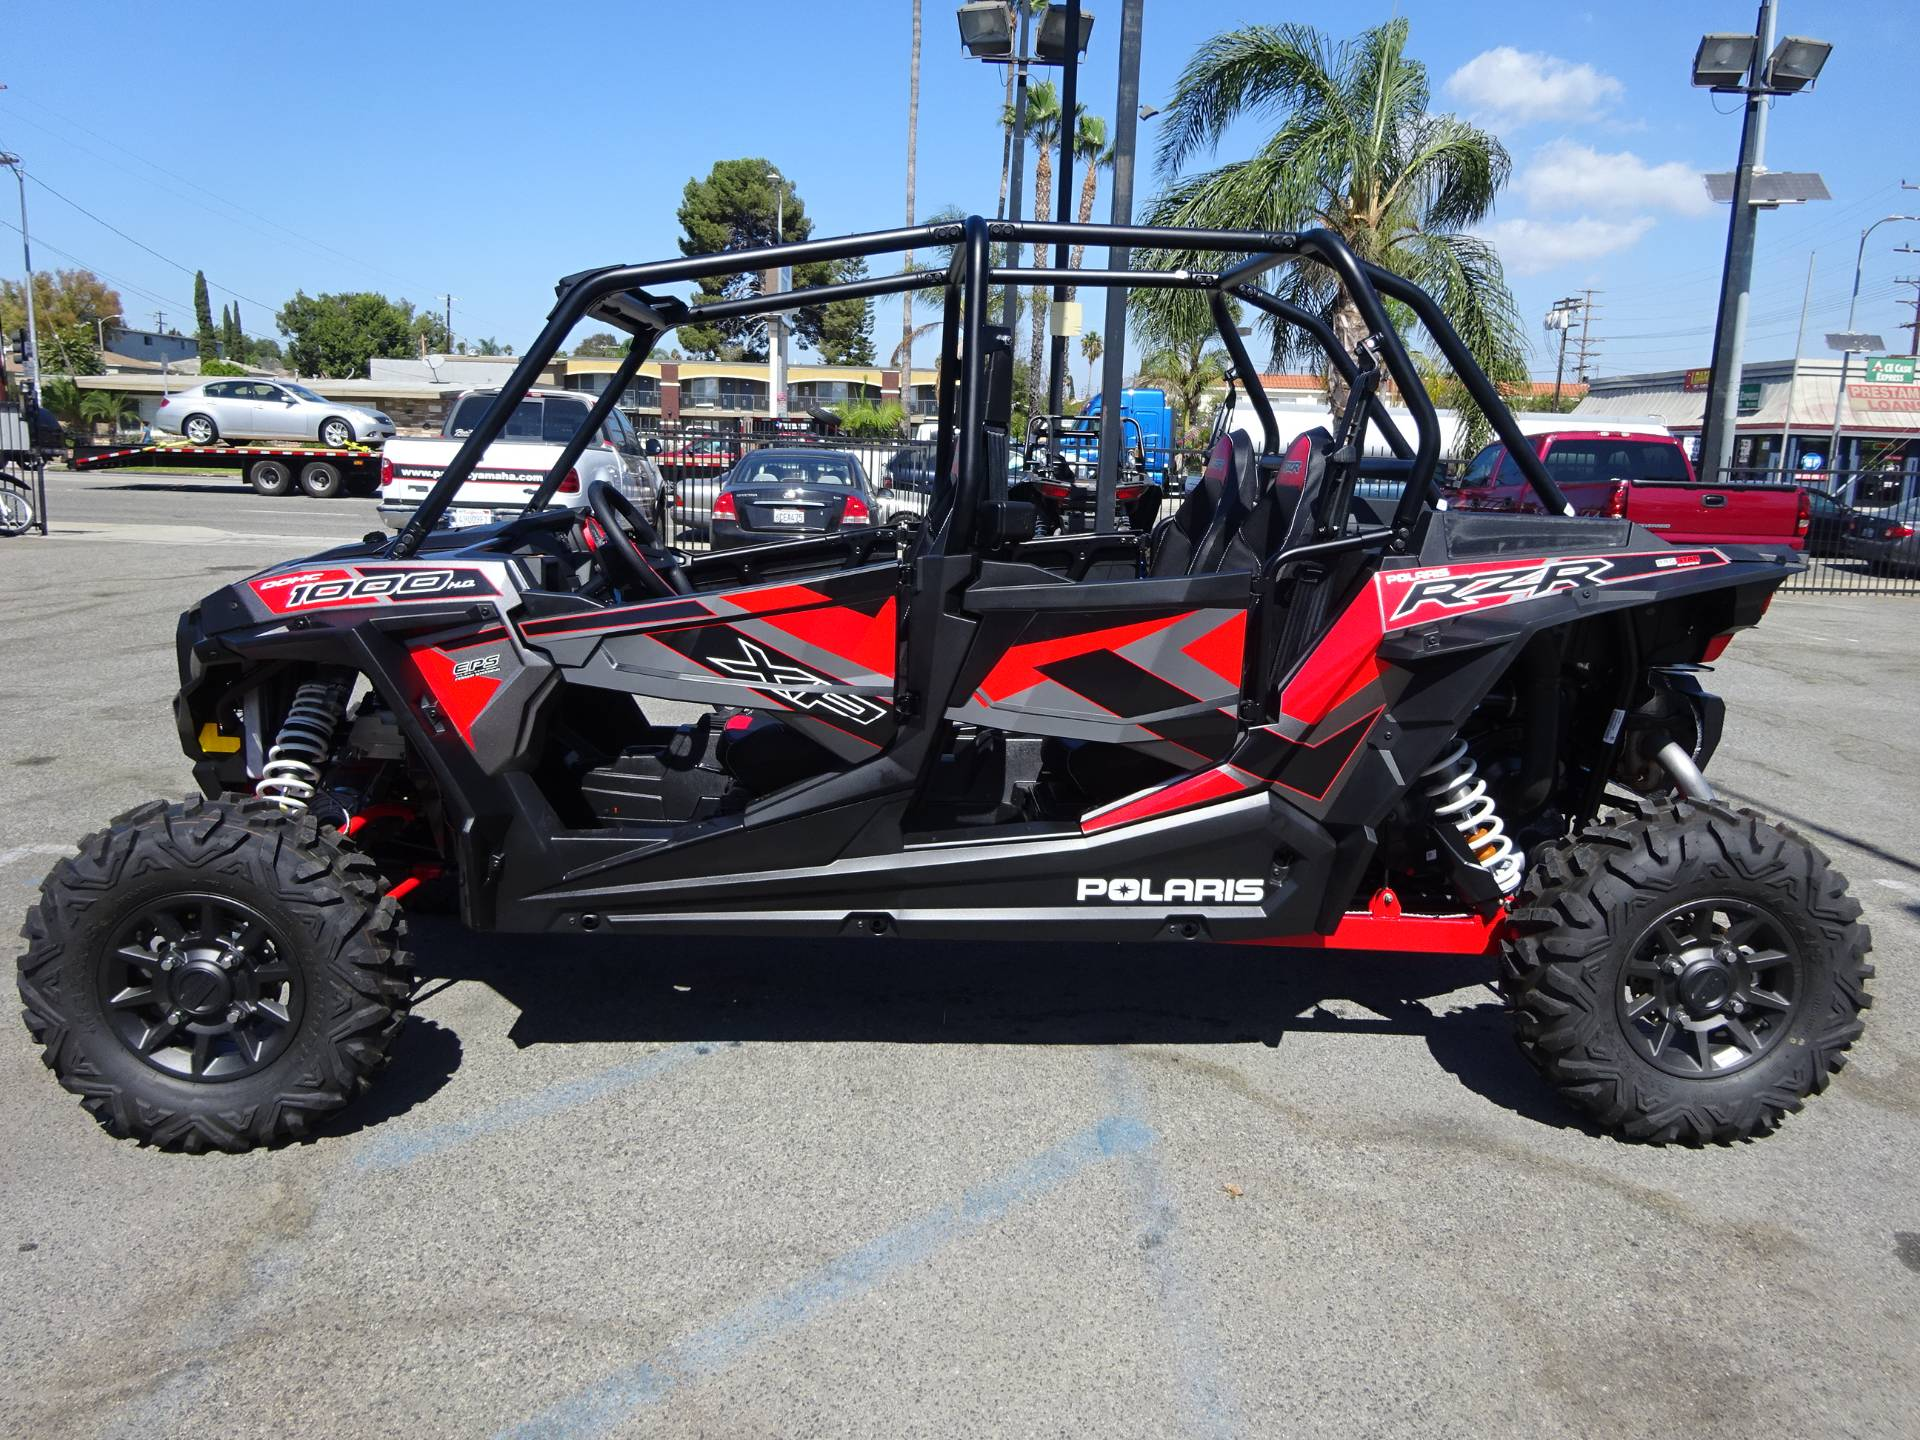 new 2017 polaris rzr xp 4 1000 eps utility vehicles in harbor city ca stock number 1216 1865. Black Bedroom Furniture Sets. Home Design Ideas